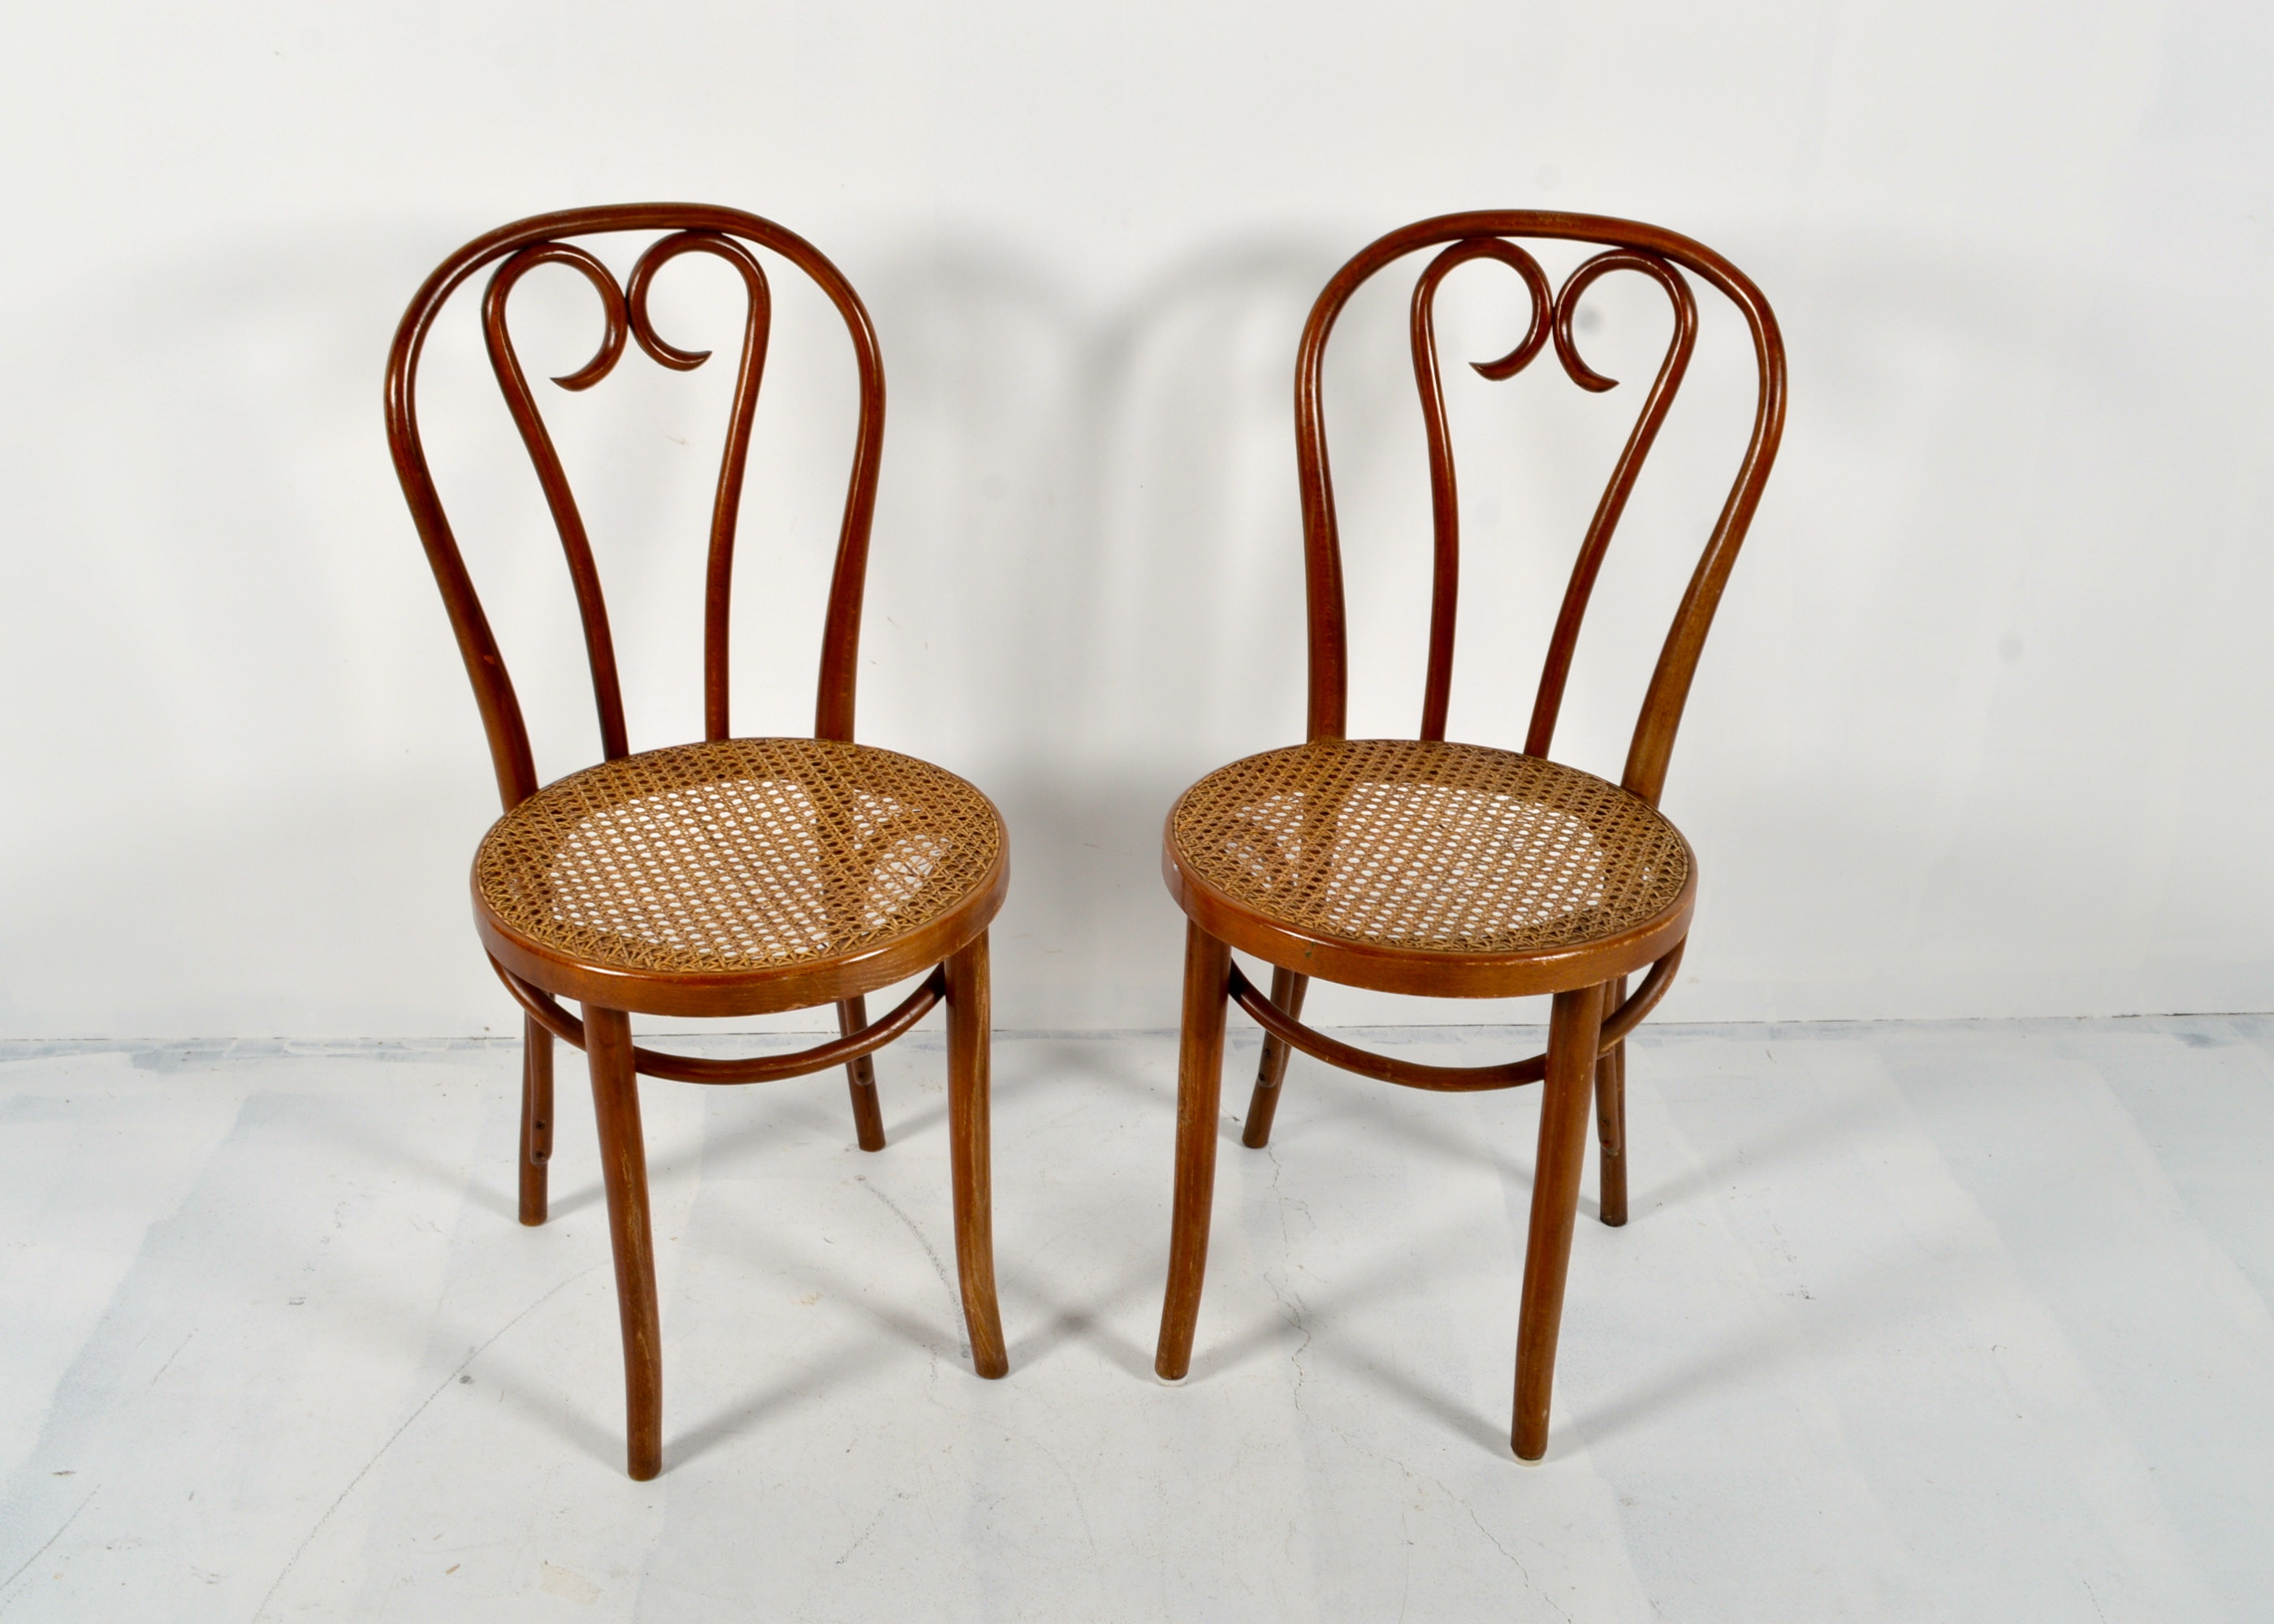 Vintage Bentwood Cane Chairs